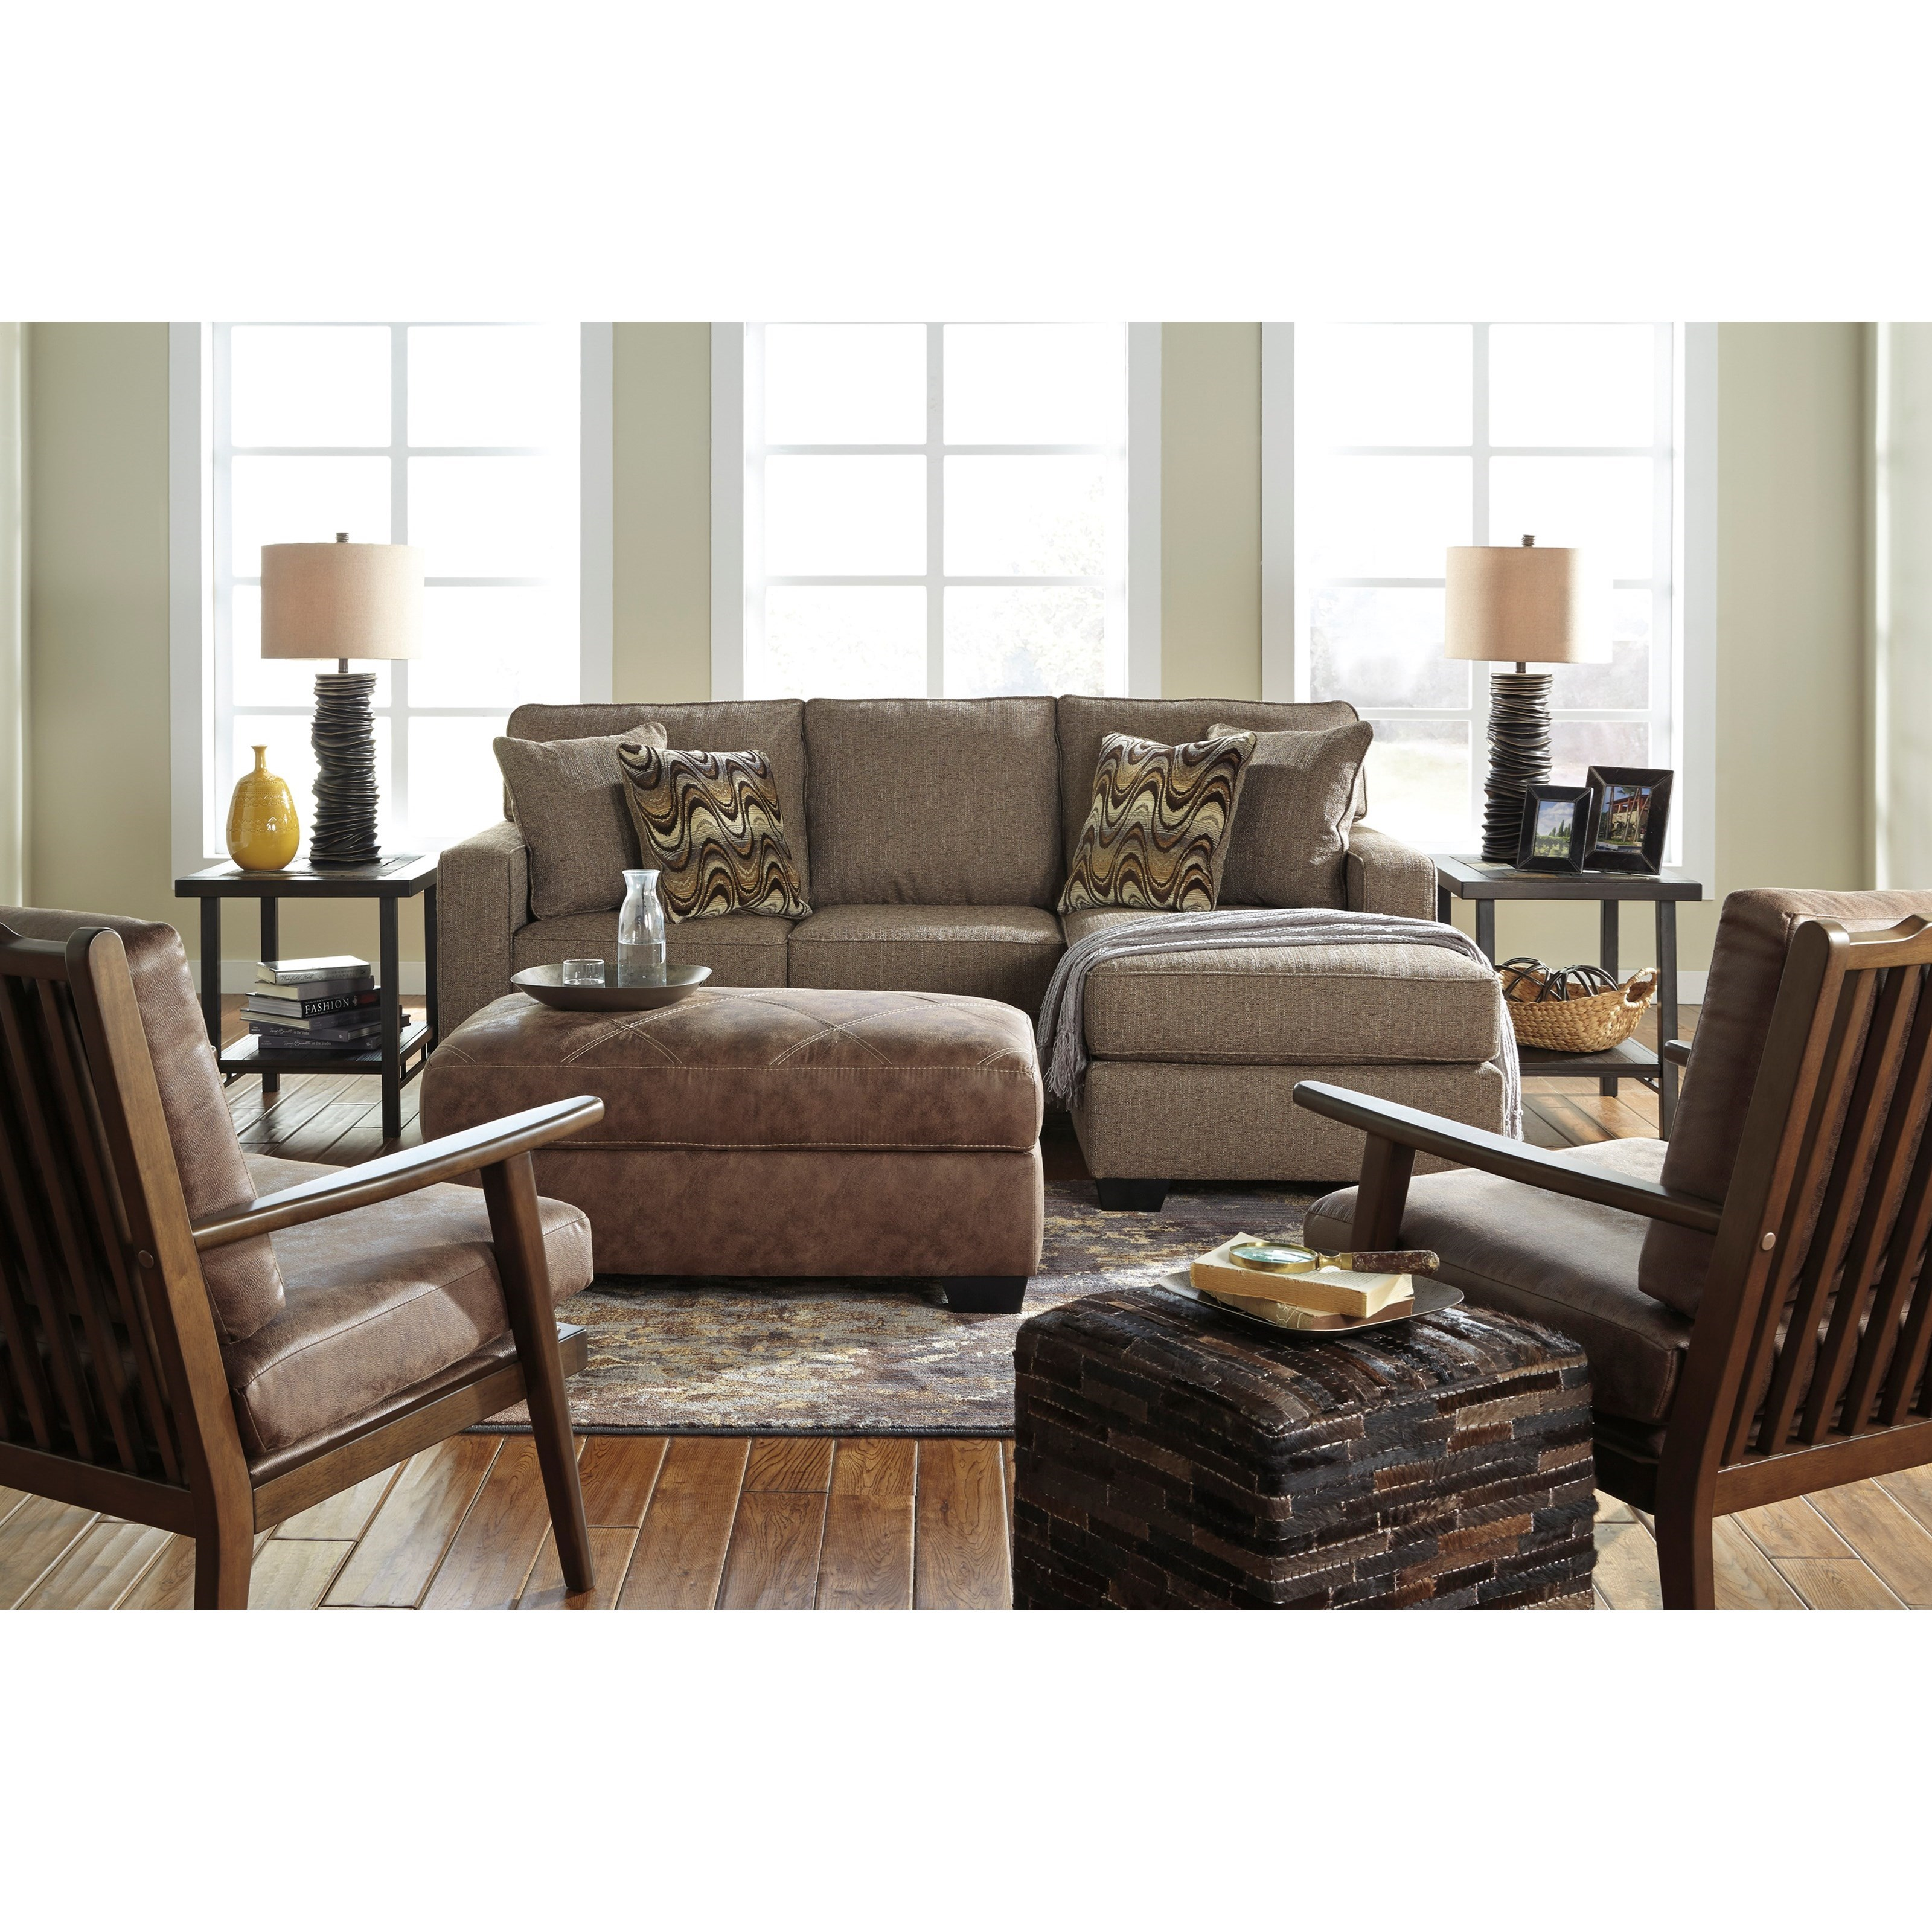 Benchcraft tanacra stationary living room group value for Living room furniture groups